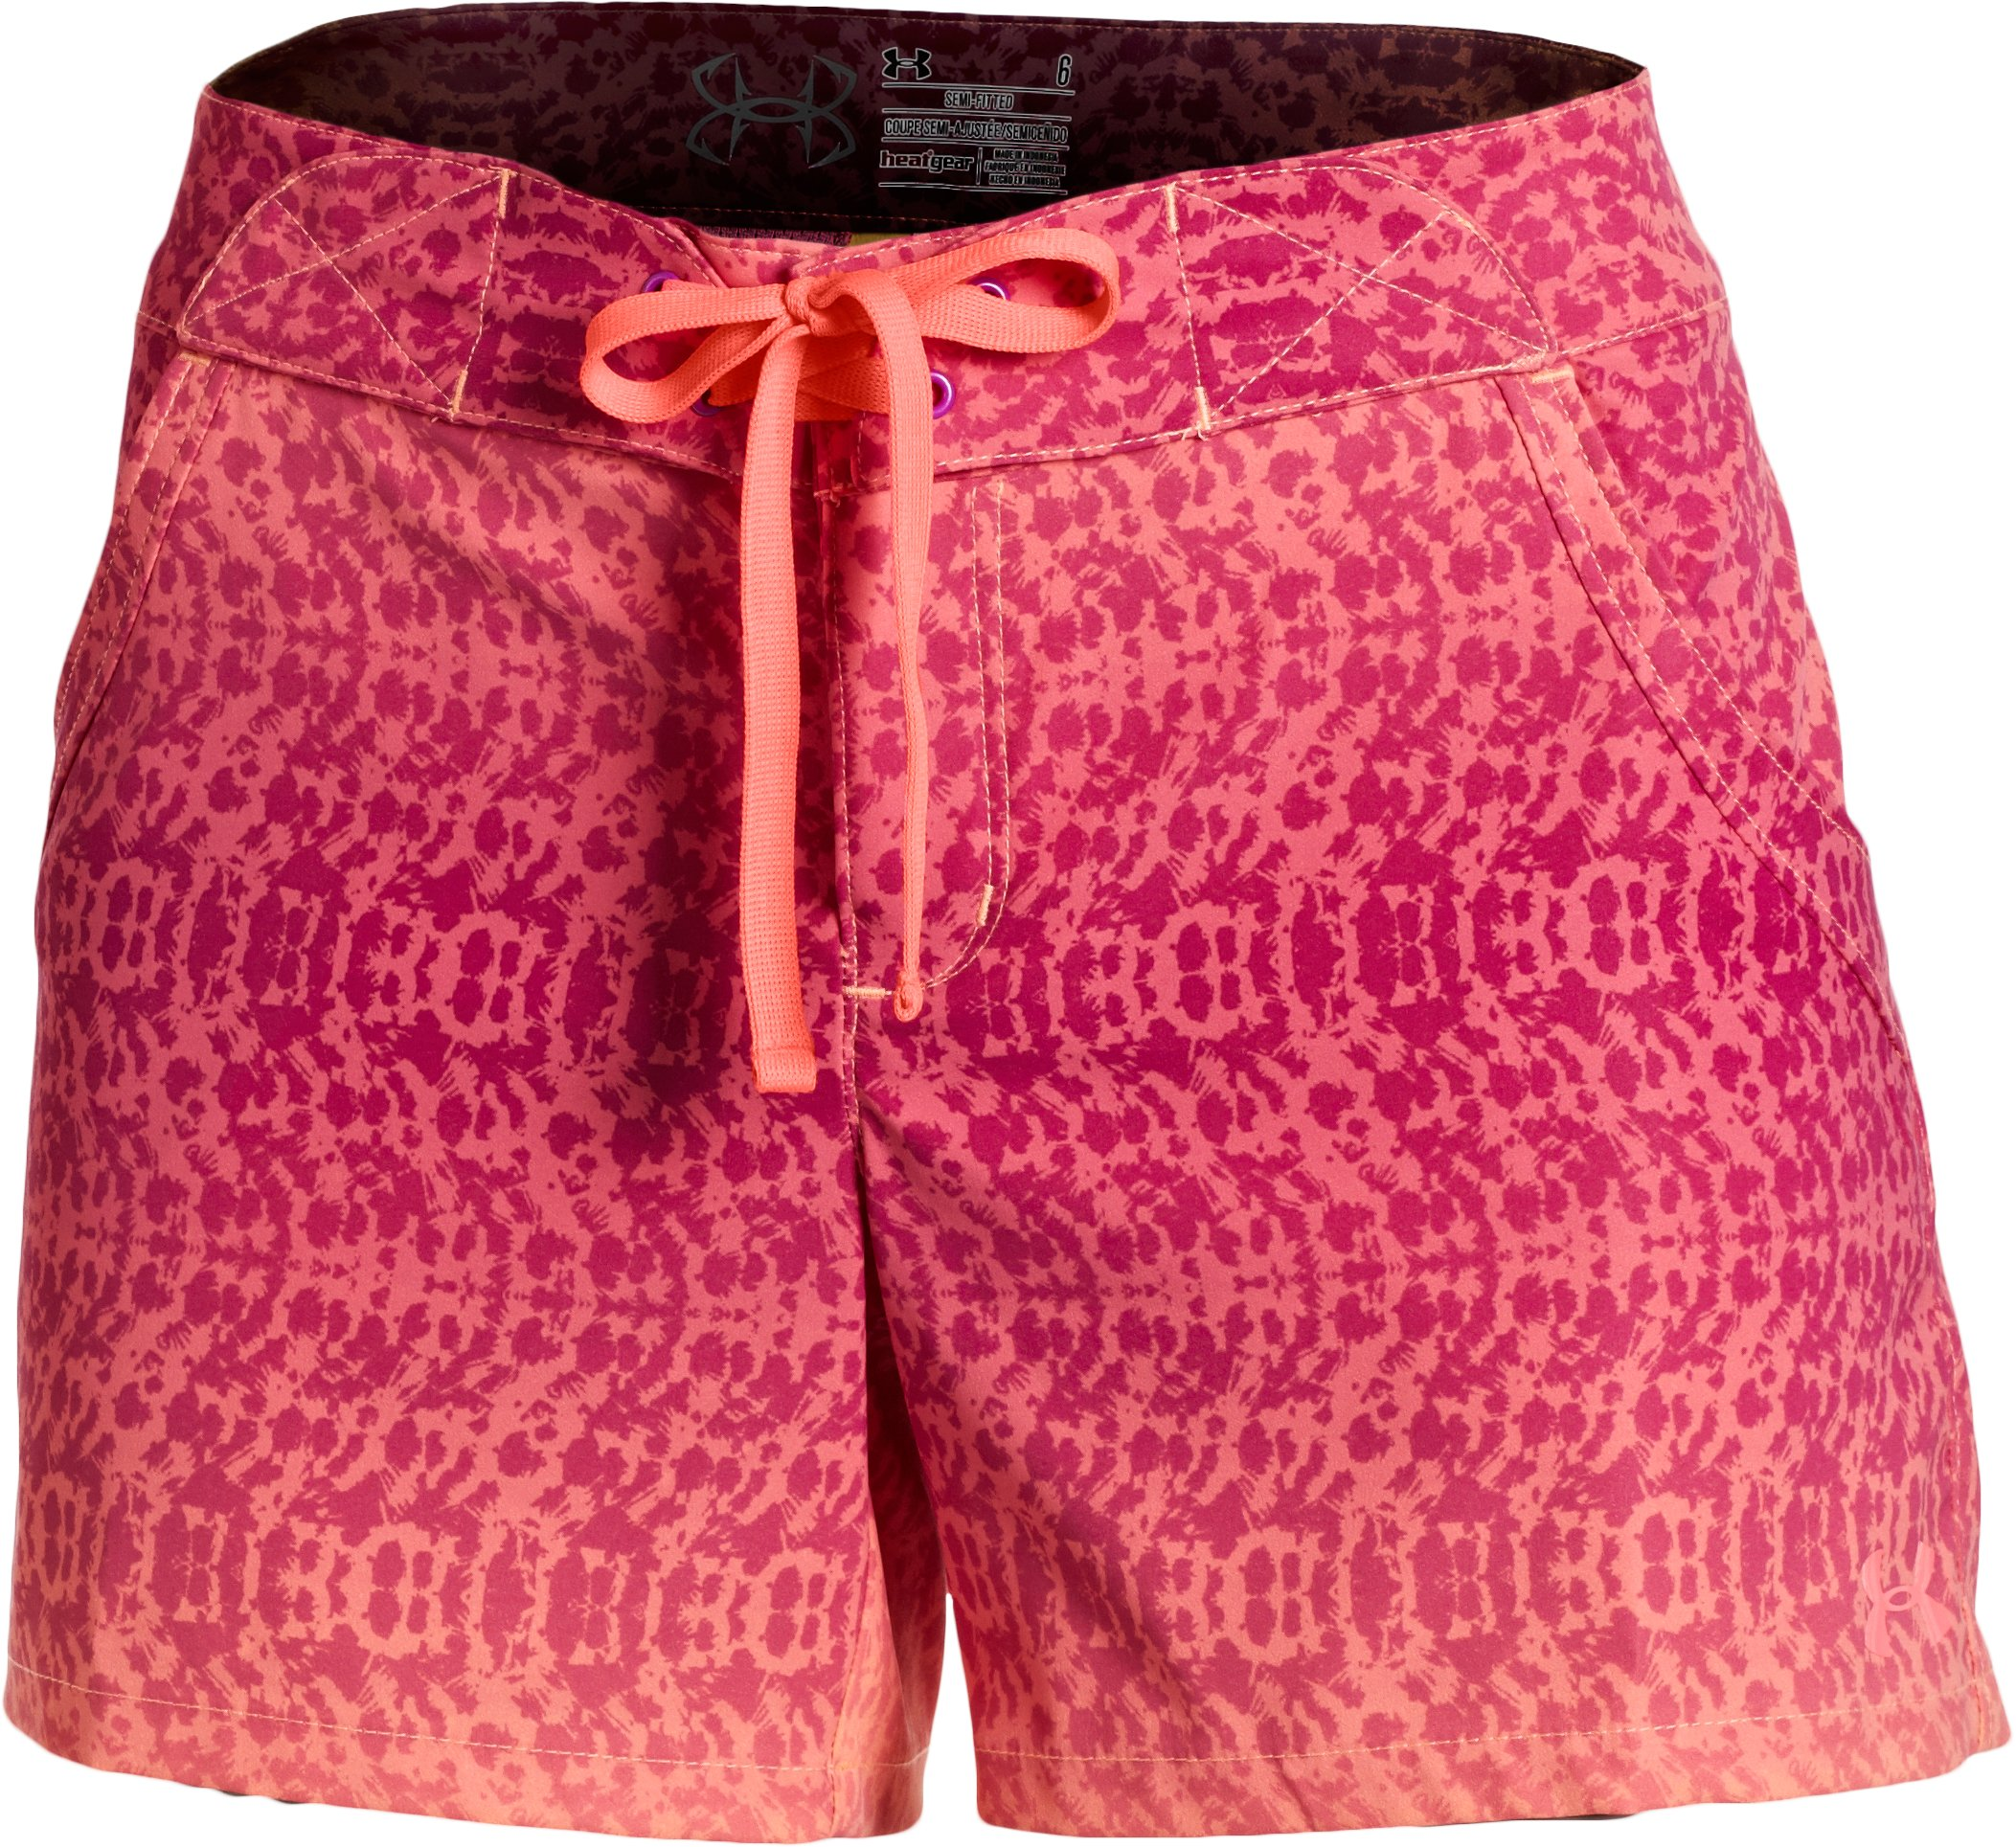 Women's UA Even Keel Board Shorts, Afterglow